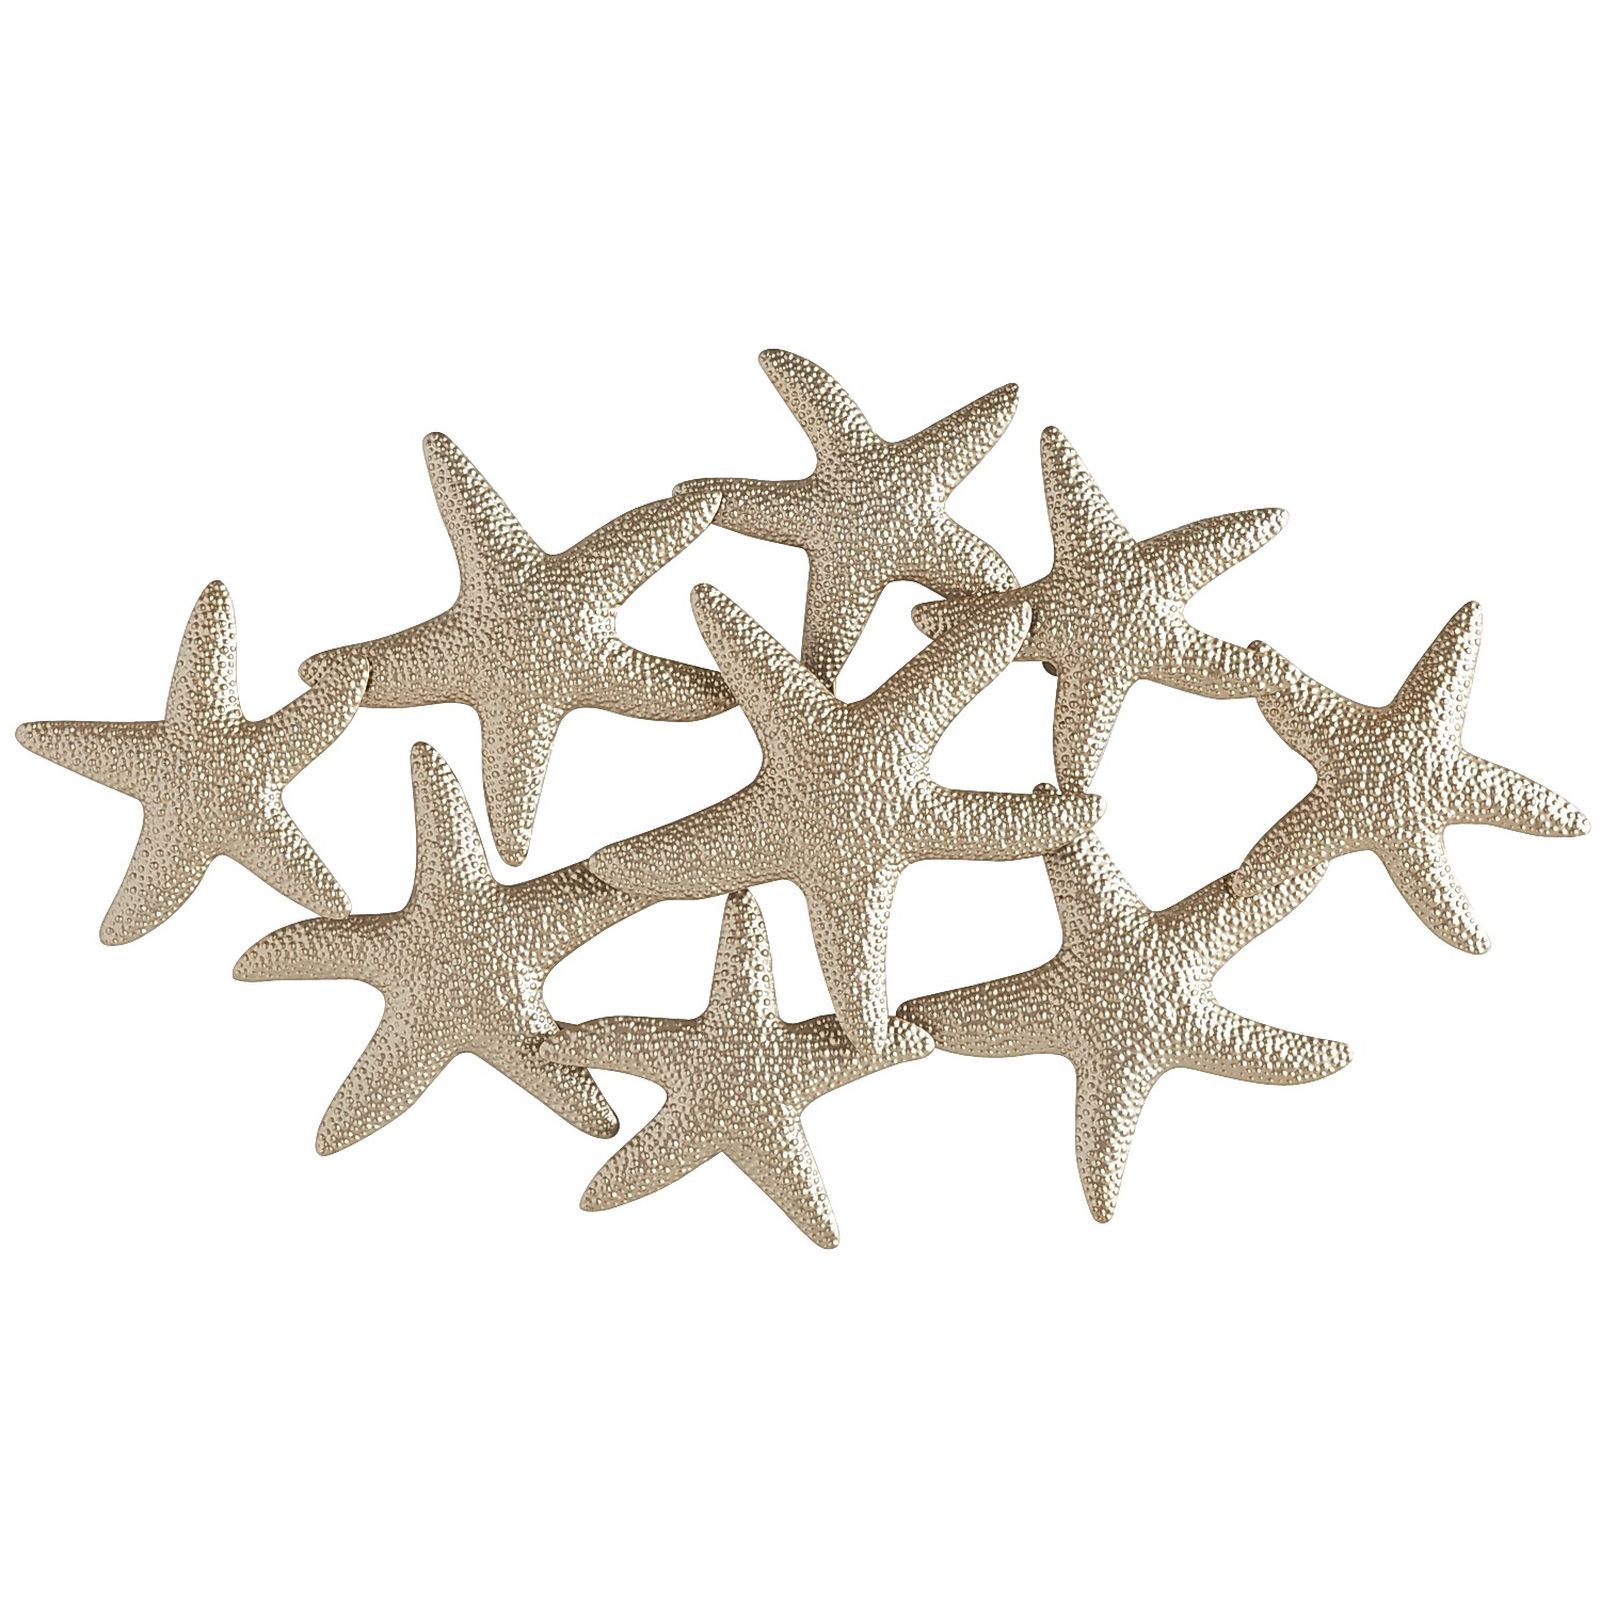 Shimmering In A Lovely Champagne Color Our Cast Iron Starfish Wall Decor Is Right At Home Coastal Theme Instantly Adding Bit Of The Beach To Any